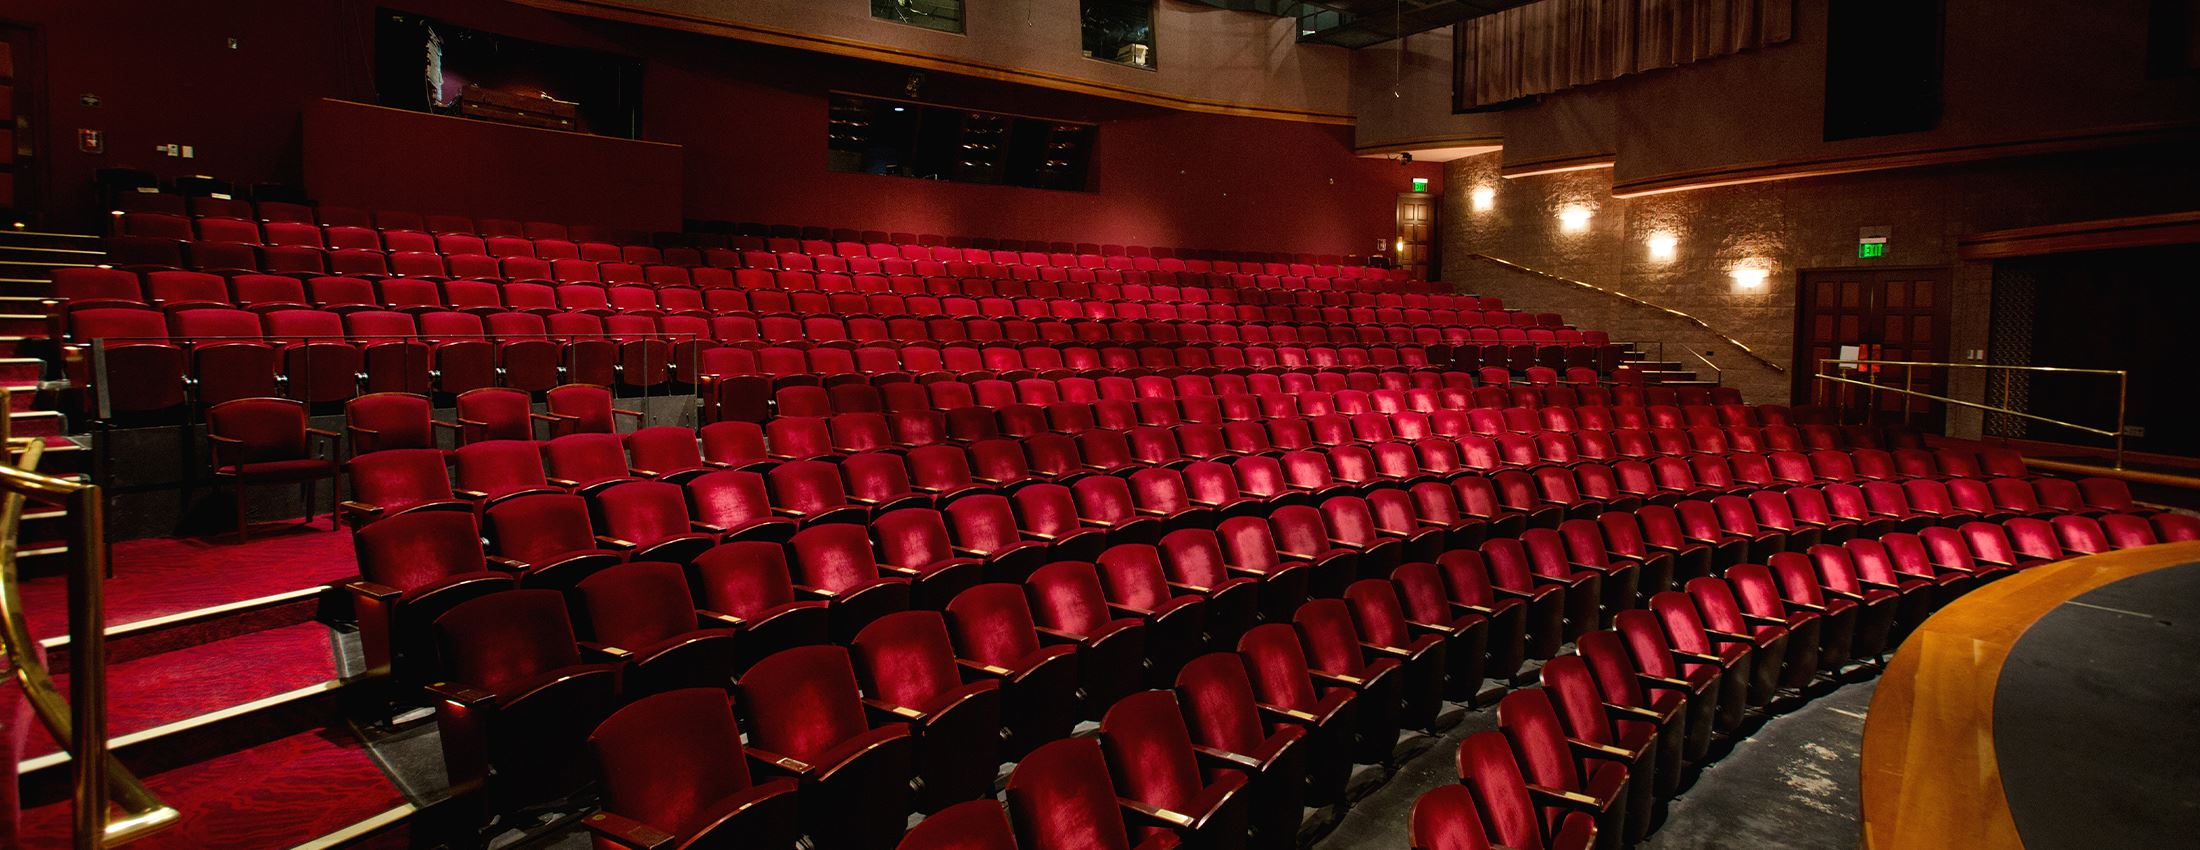 Village Theater | Canton Township, MI - Official Website